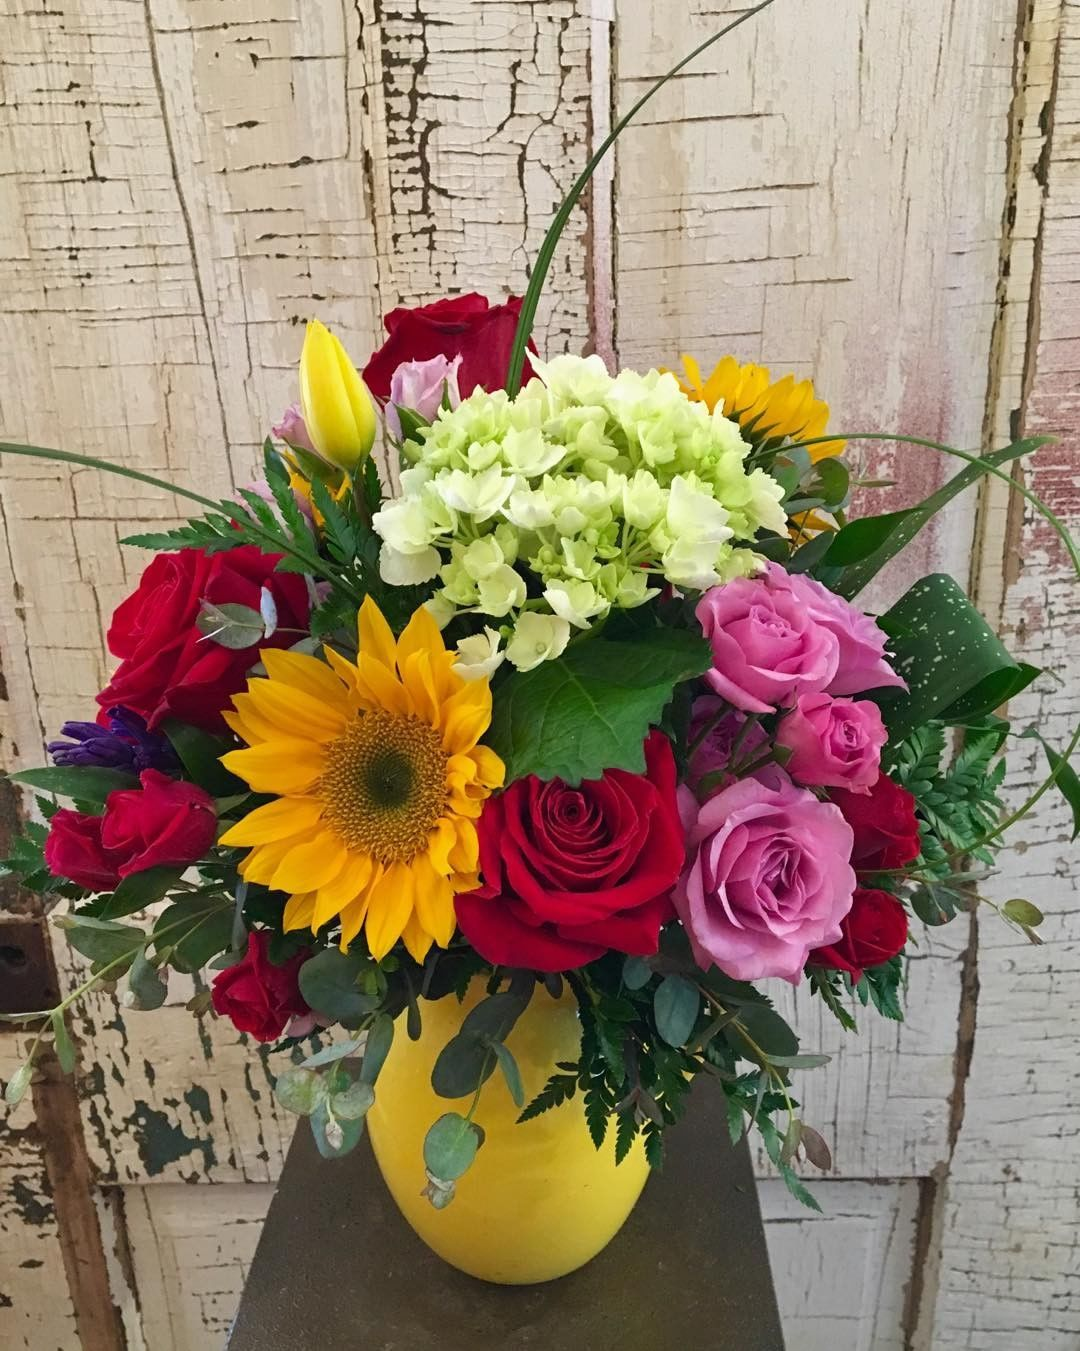 Pin by zengels flowers and gifts on custom floral arrangements instagram post by zengel flowers and gifts apr 20 2017 at 140pm utc izmirmasajfo